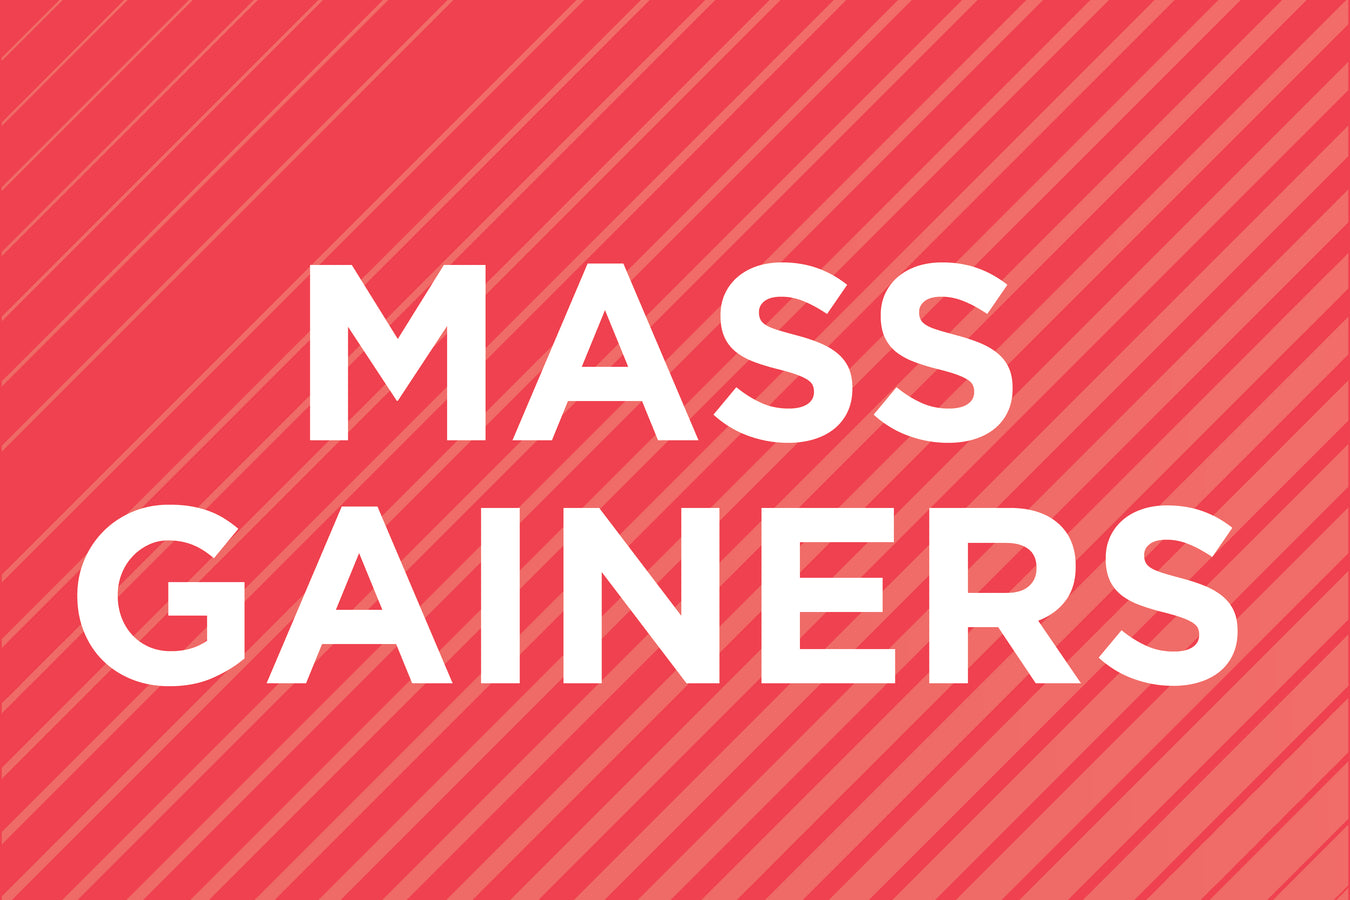 MASS GAINERS